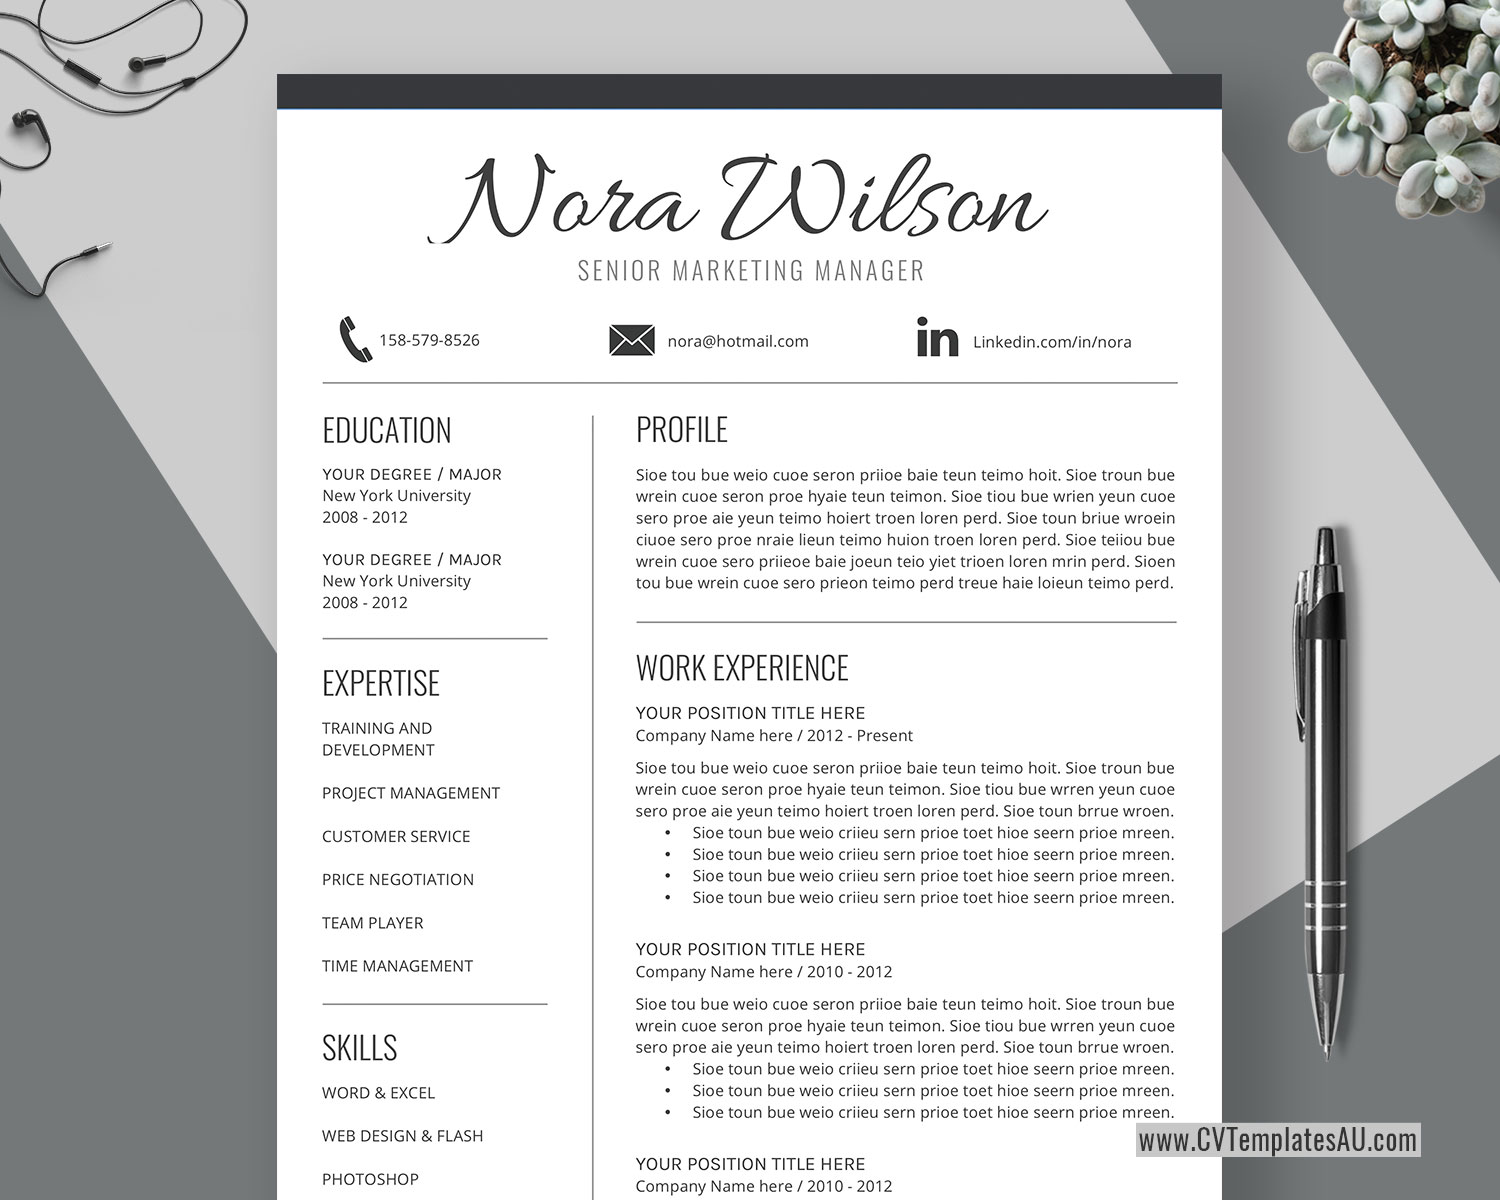 Simple CV Template for Microsoft Word, Cover Letter, Basic ...